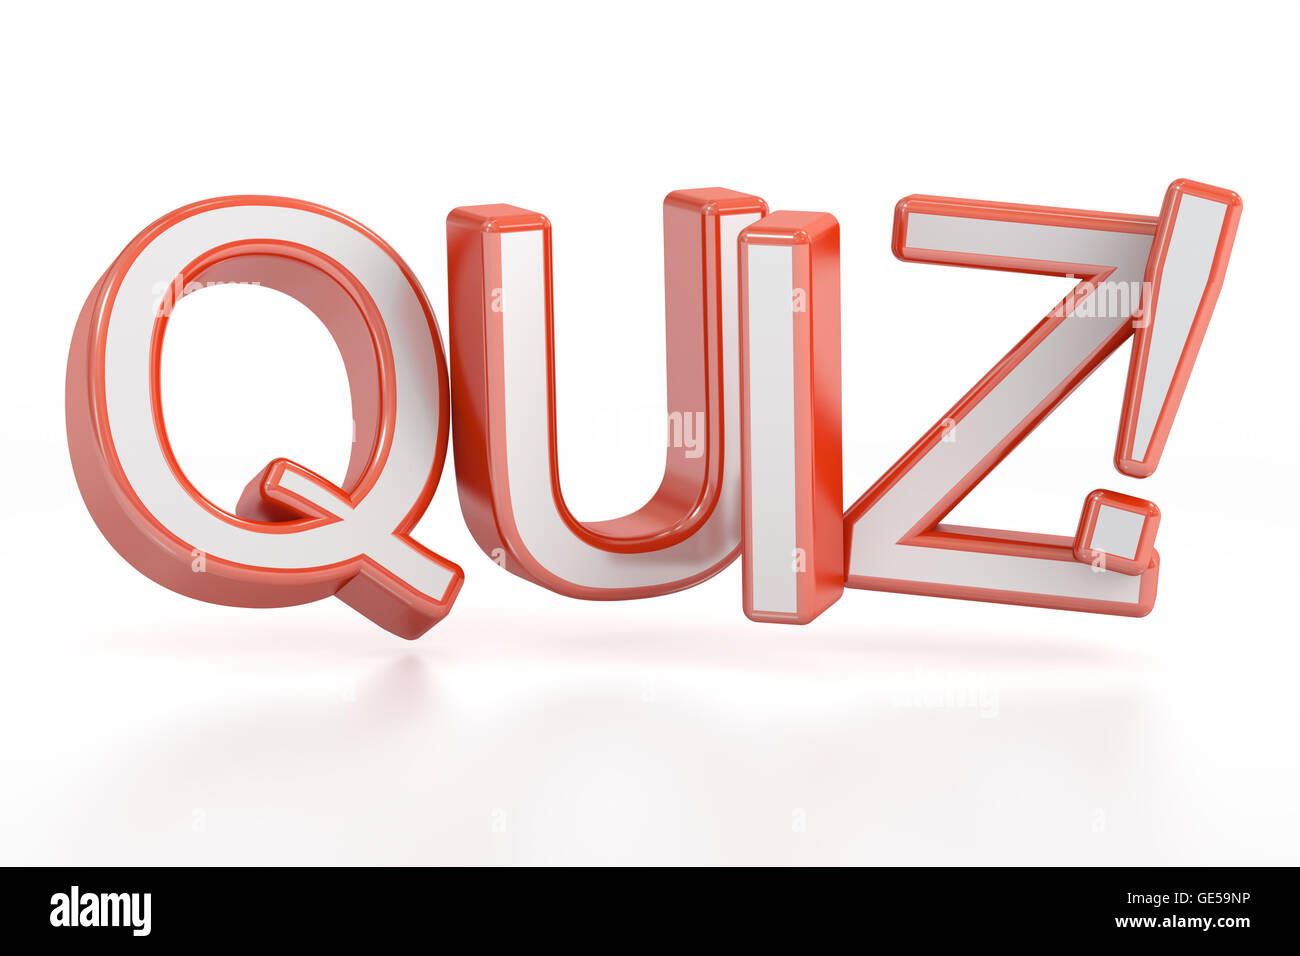 Quiz 3d Rendering Isolated On White Background Stock Photo Royalty Free Image